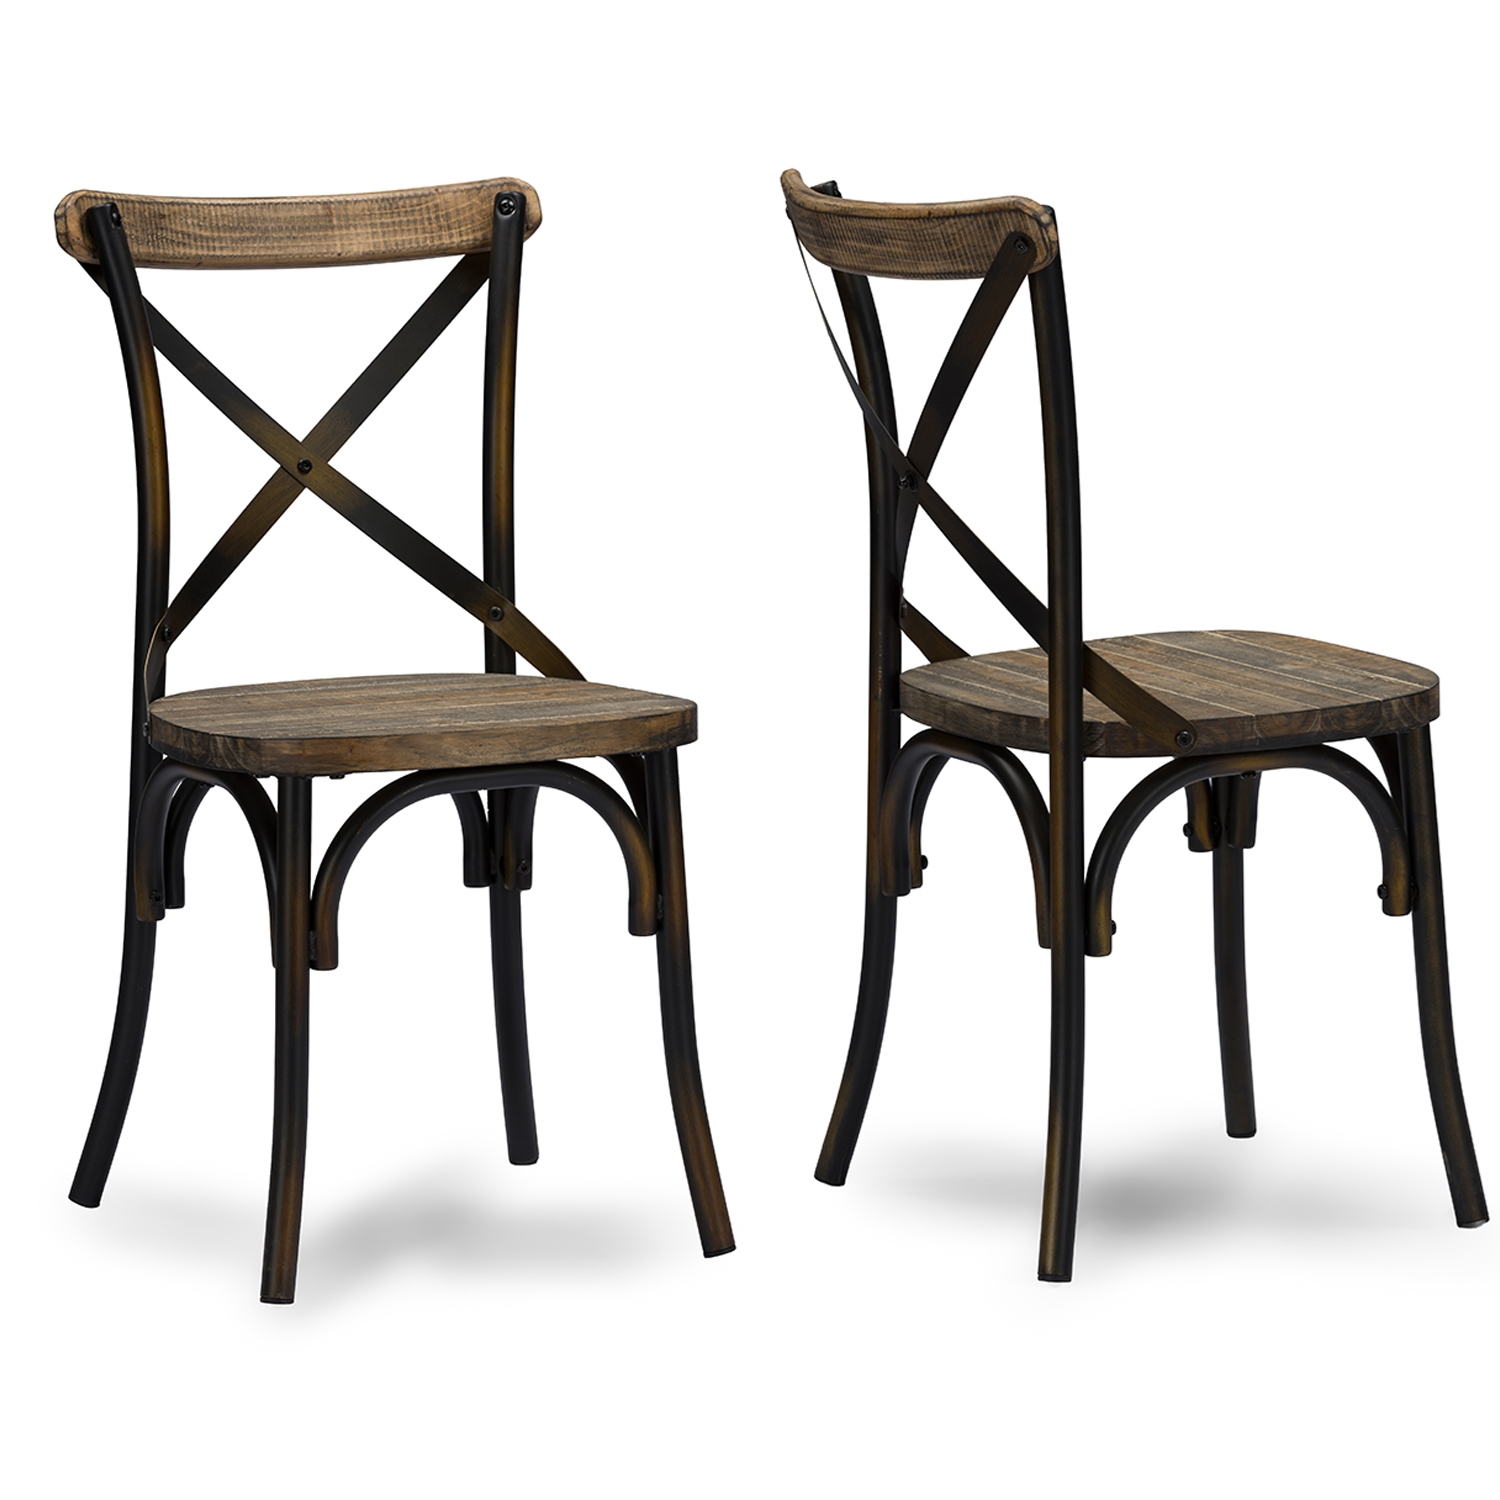 Baxton Studio Konstanze Industrial Walnut Wood And Metal Dining Chair In  Antique Cooper Finishing   IEM ...